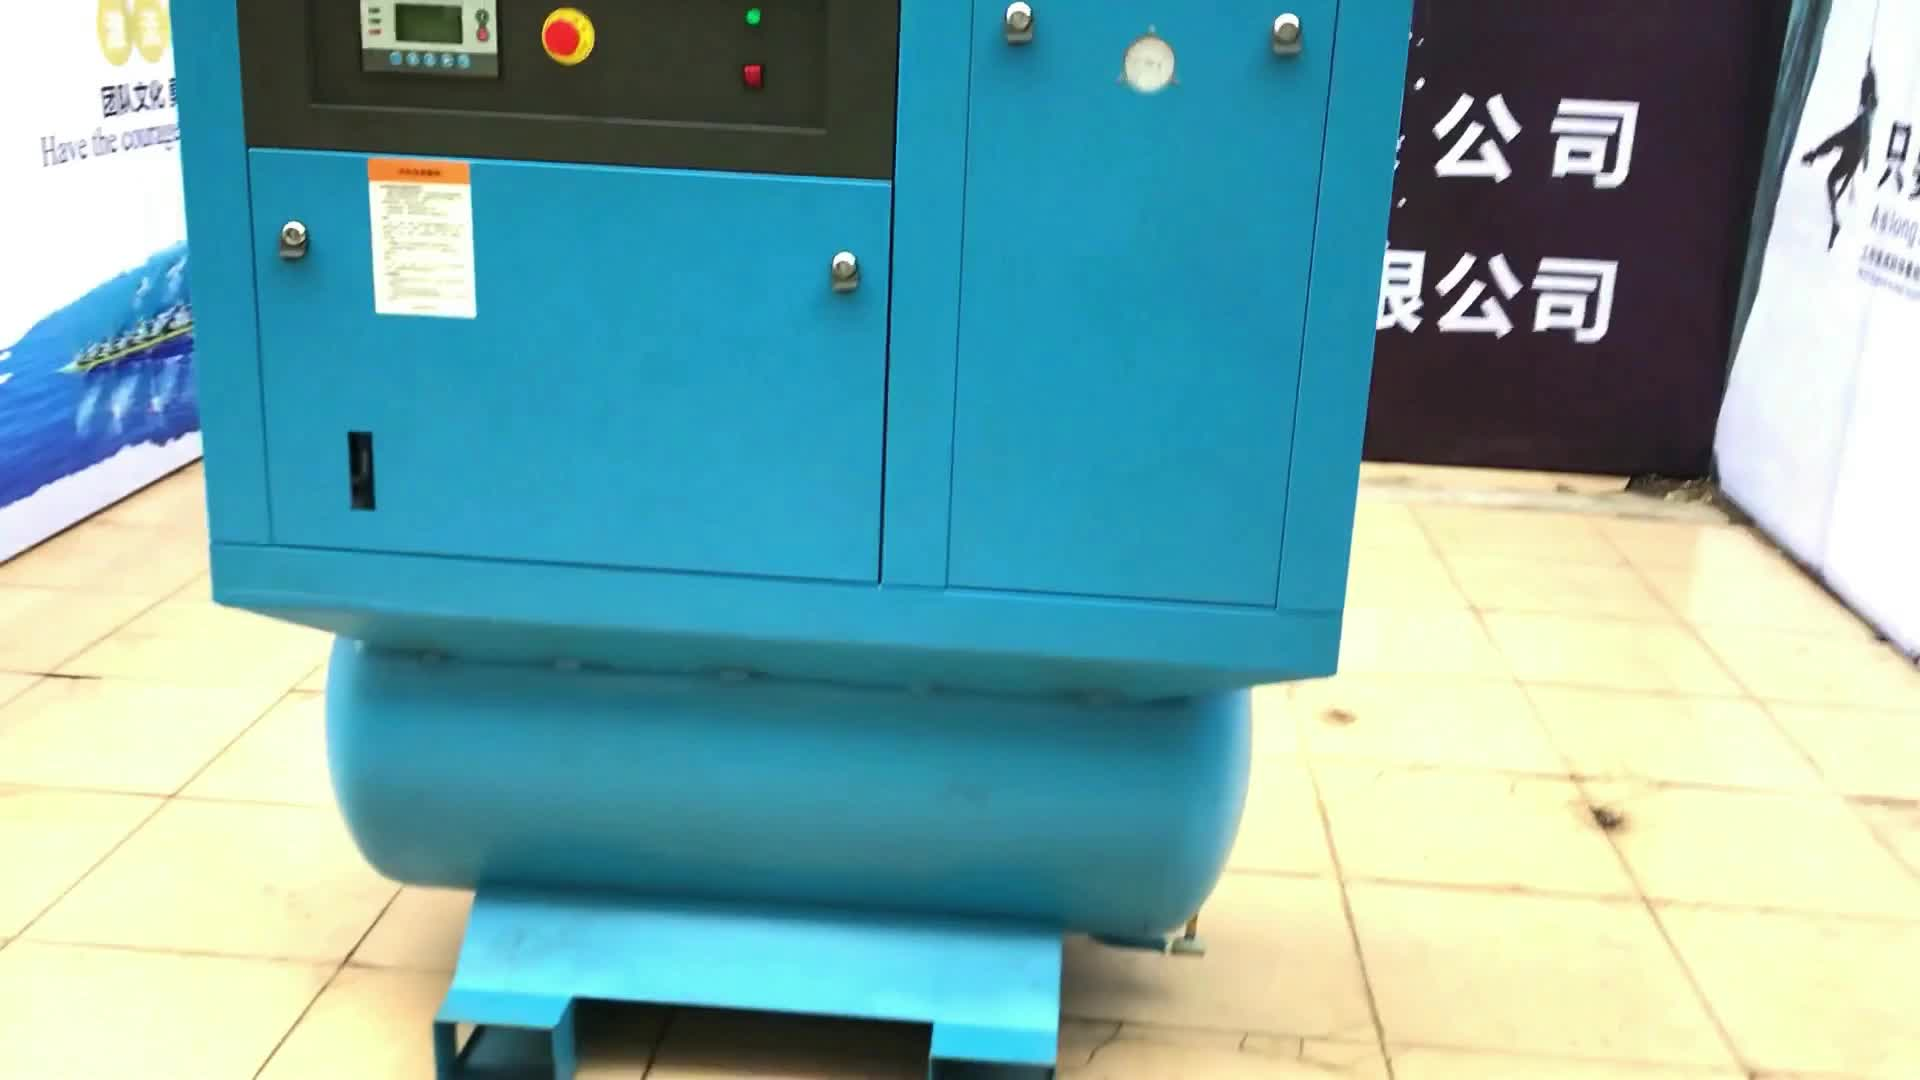 Fengshi screw compressor w dryer 10 horsepower